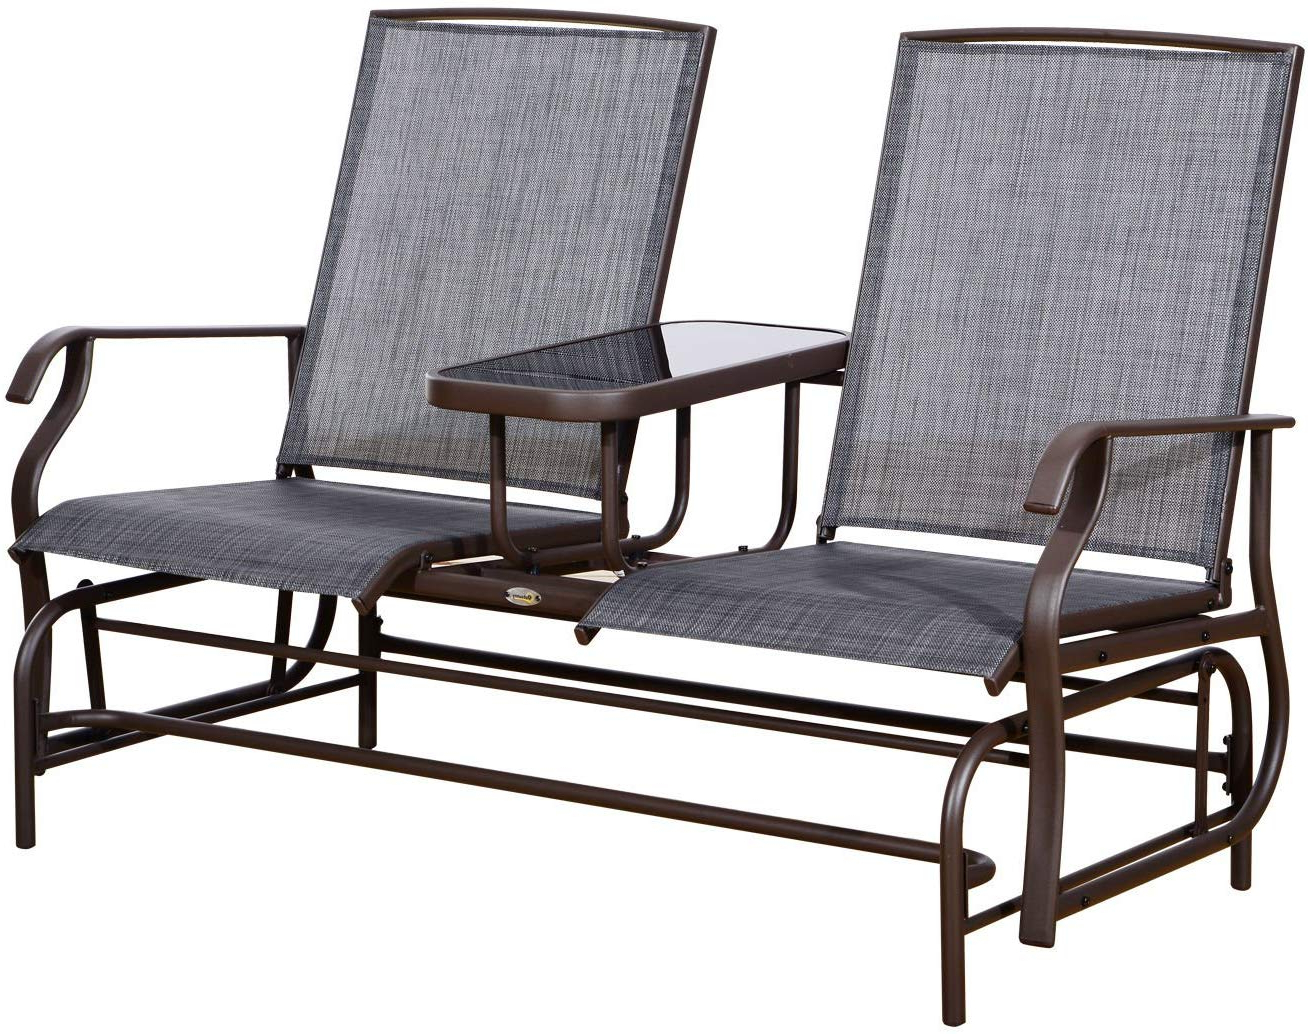 Padded Sling Double Glider Benches Within Fashionable Outsunny 2 Person Outdoor Mesh Fabric Patio Double Glider Chair W/center Table (View 17 of 30)